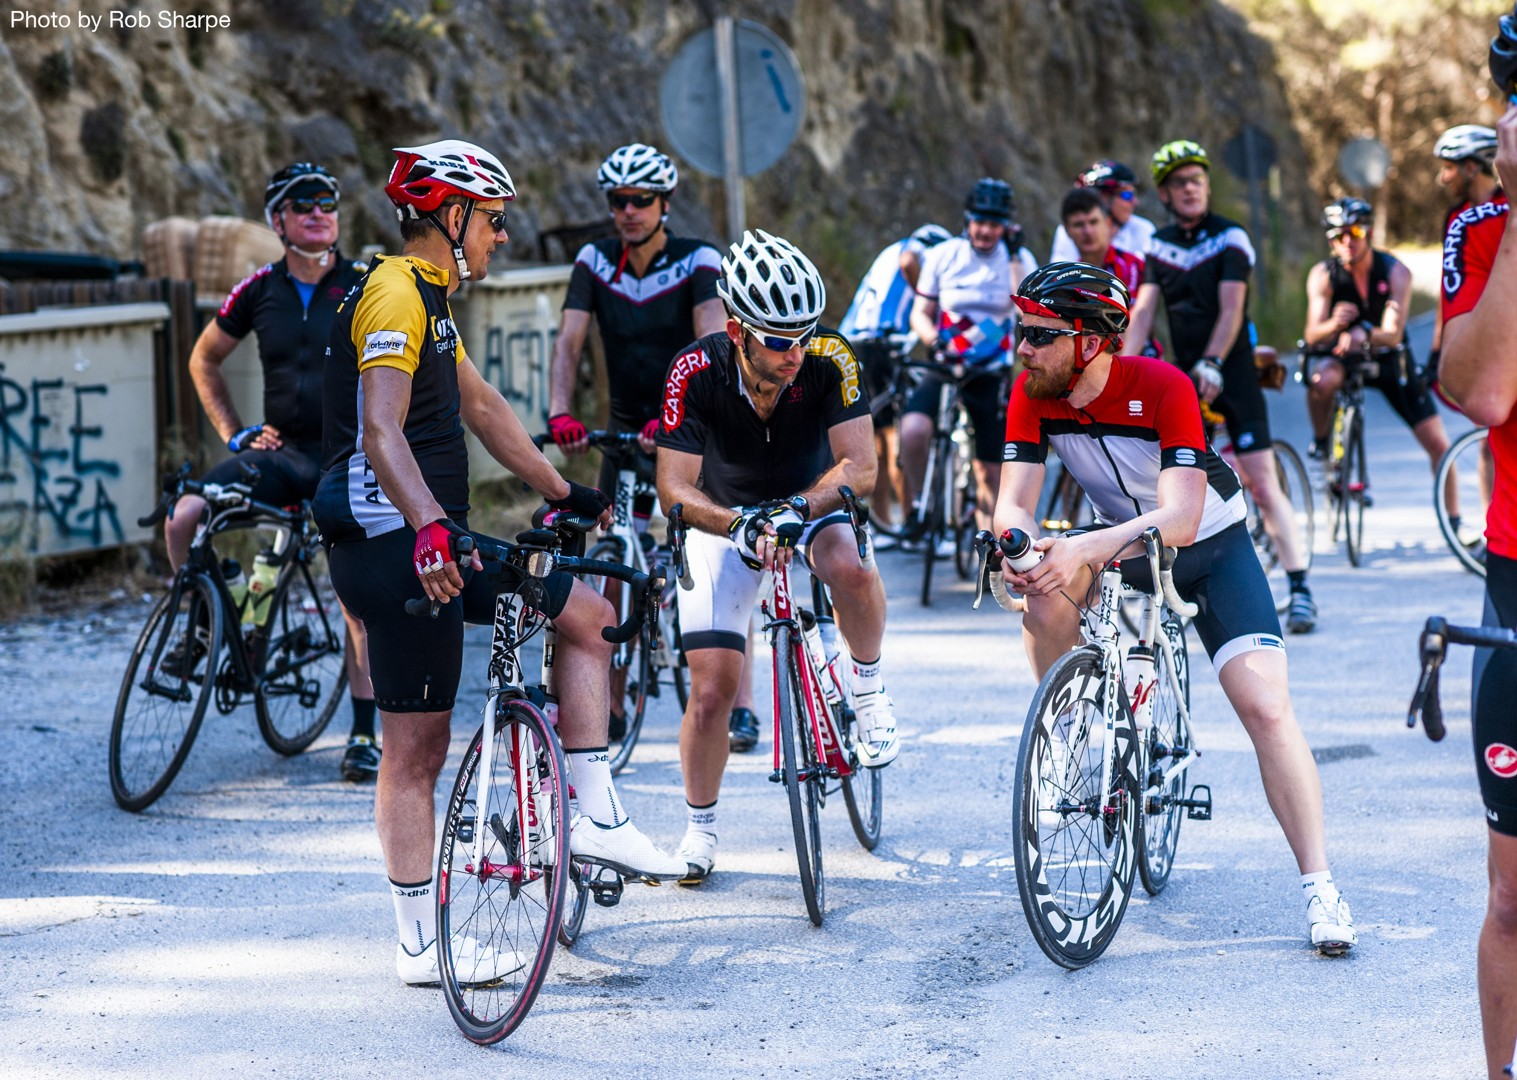 day6_carrera_del_diablo_015 copy.jpg - Southern Spain - Andalucia - Los Pueblos Blancos - Road Cycling